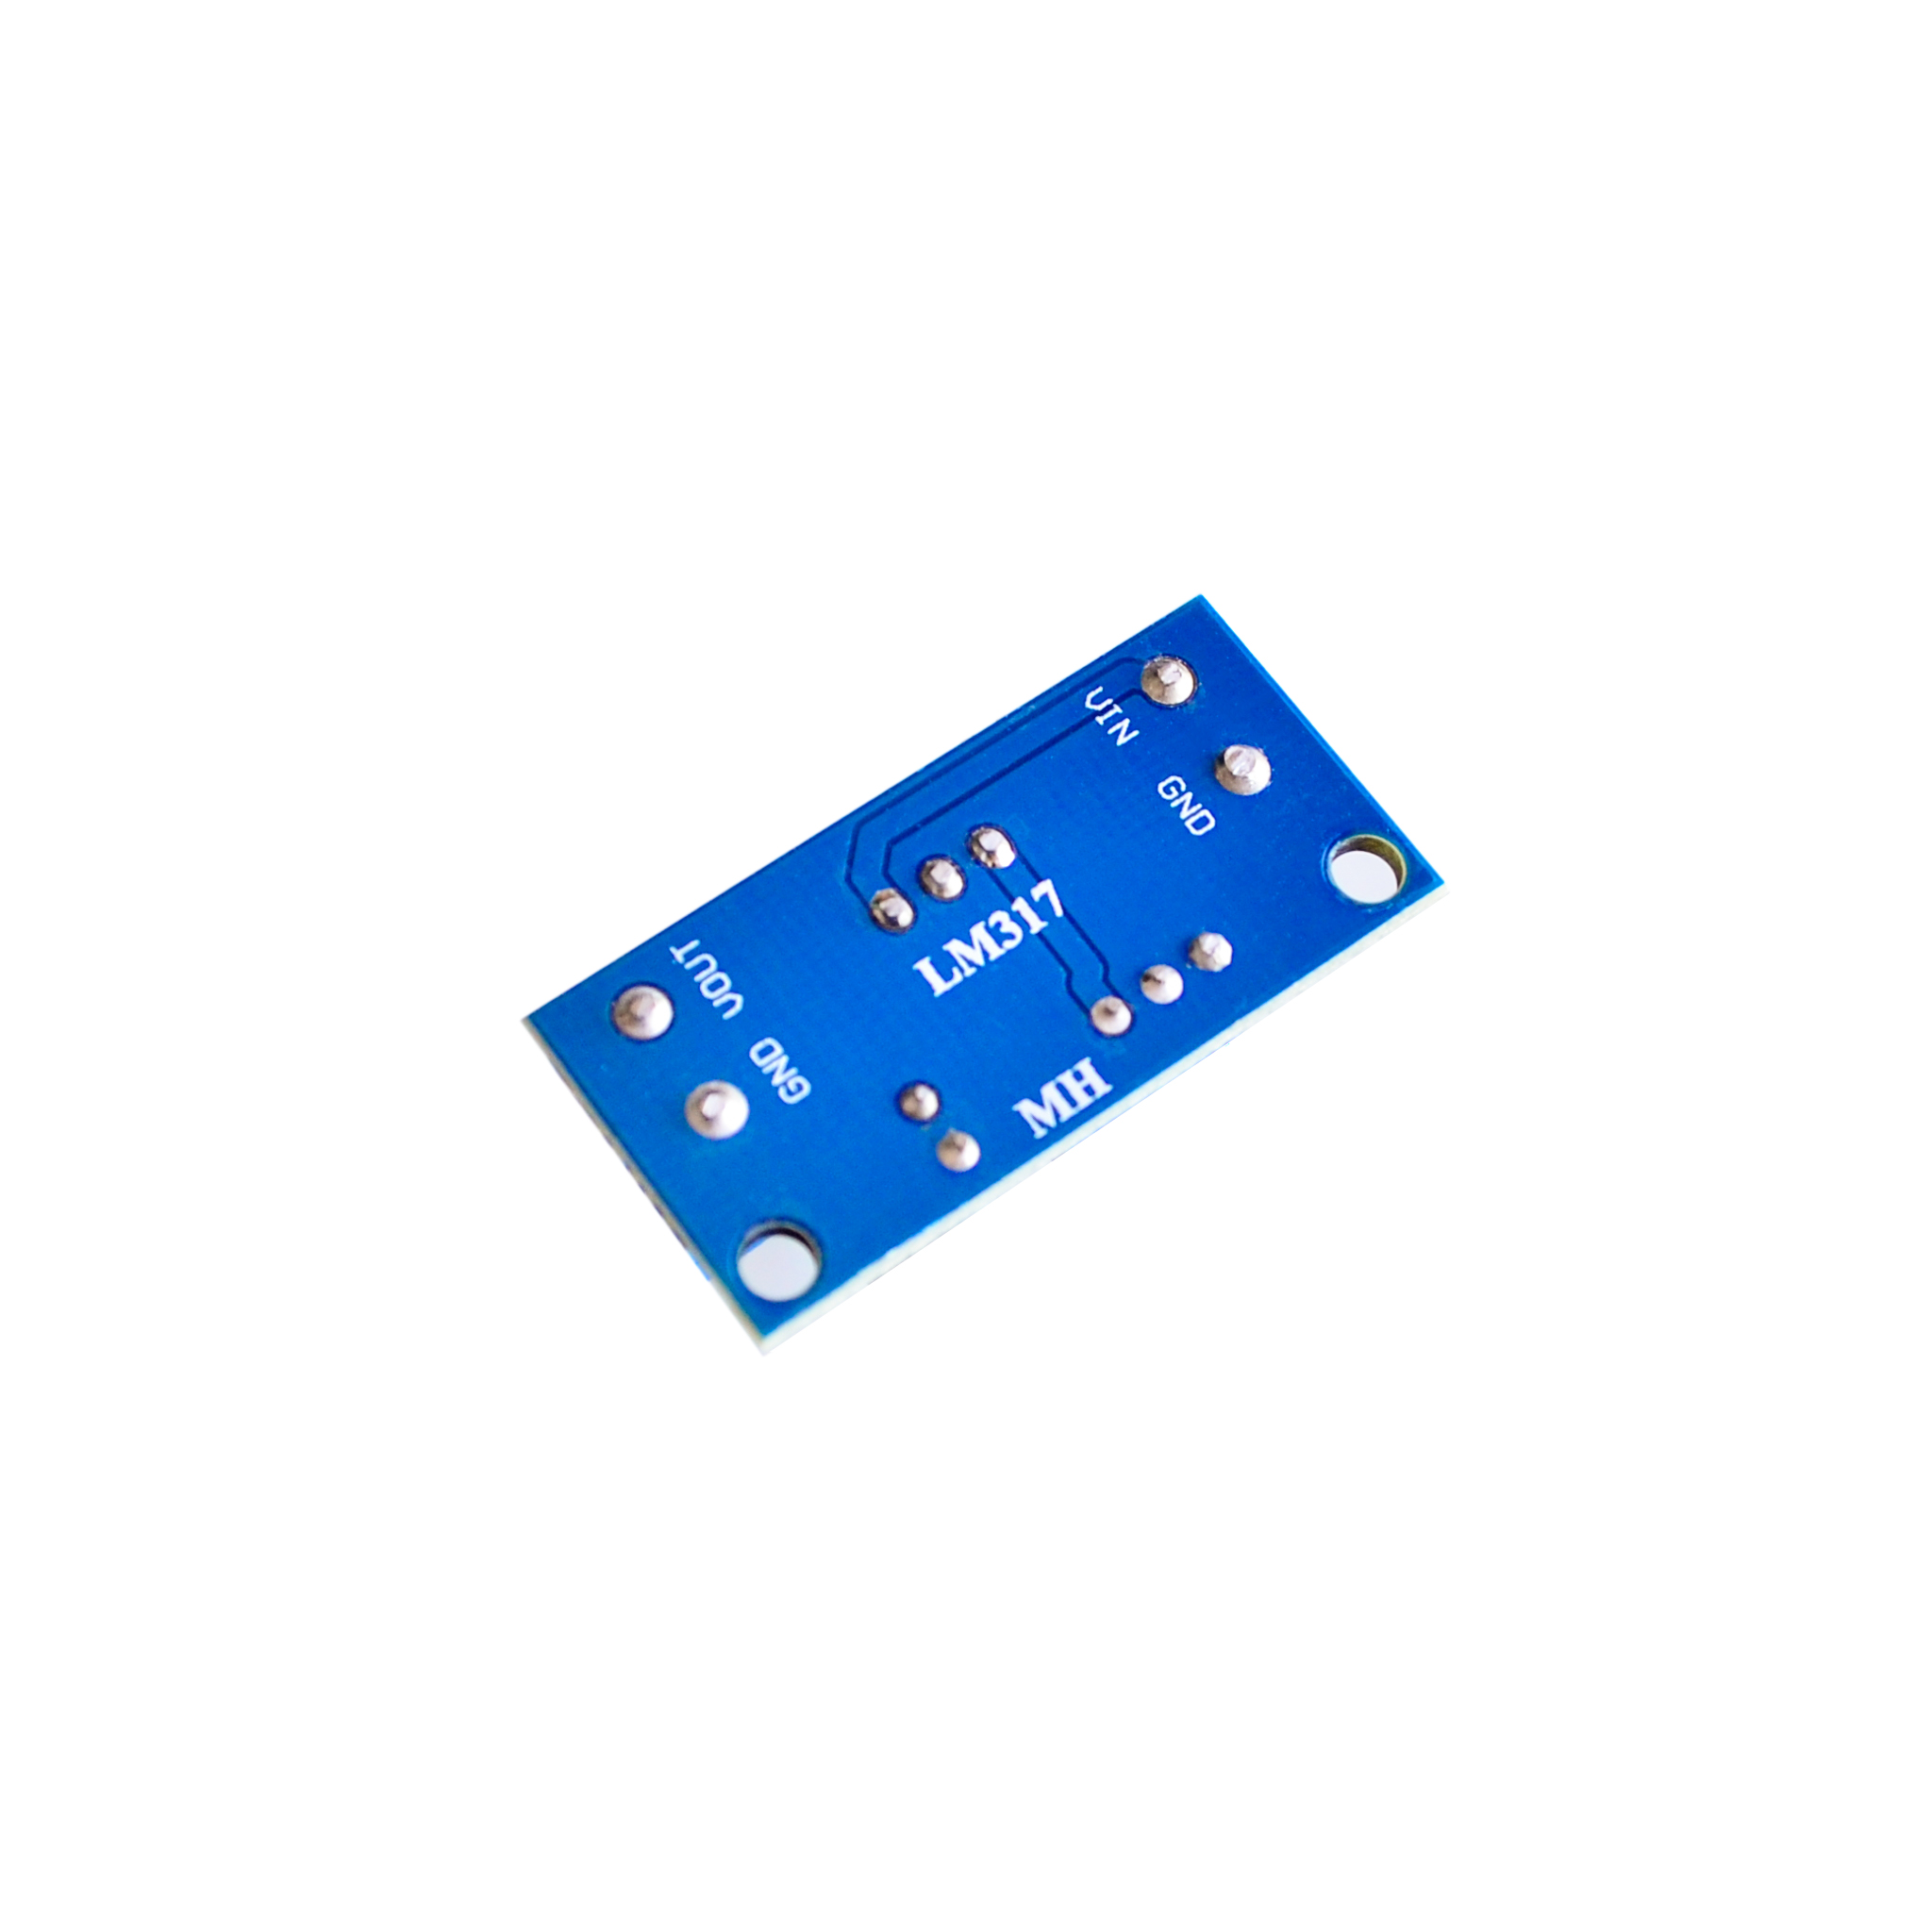 100pcs Lm317 Lm317t Dc Step Down Converter Circuit Board Power Calculator Applications Circuits Supply Module In Integrated From Electronic Components Supplies On